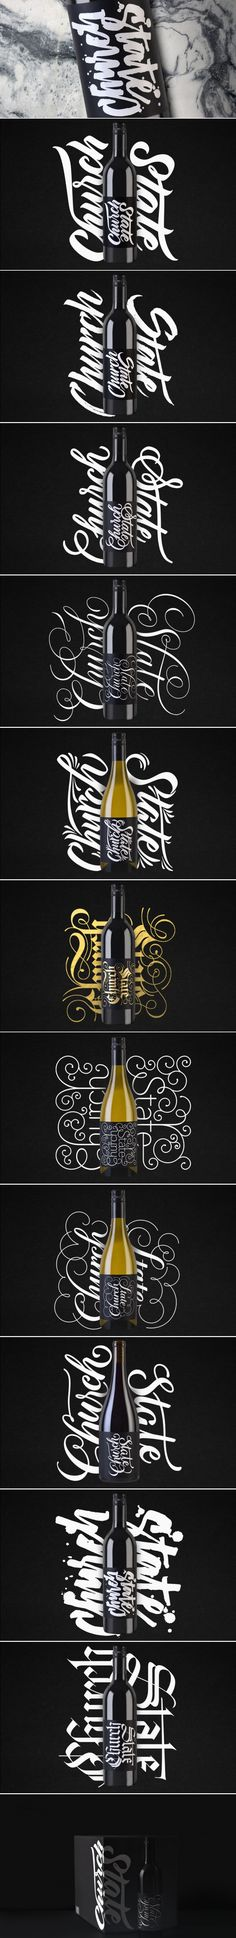 Church & State Wines — The Dieline | Packaging & Branding Design & Innovation News